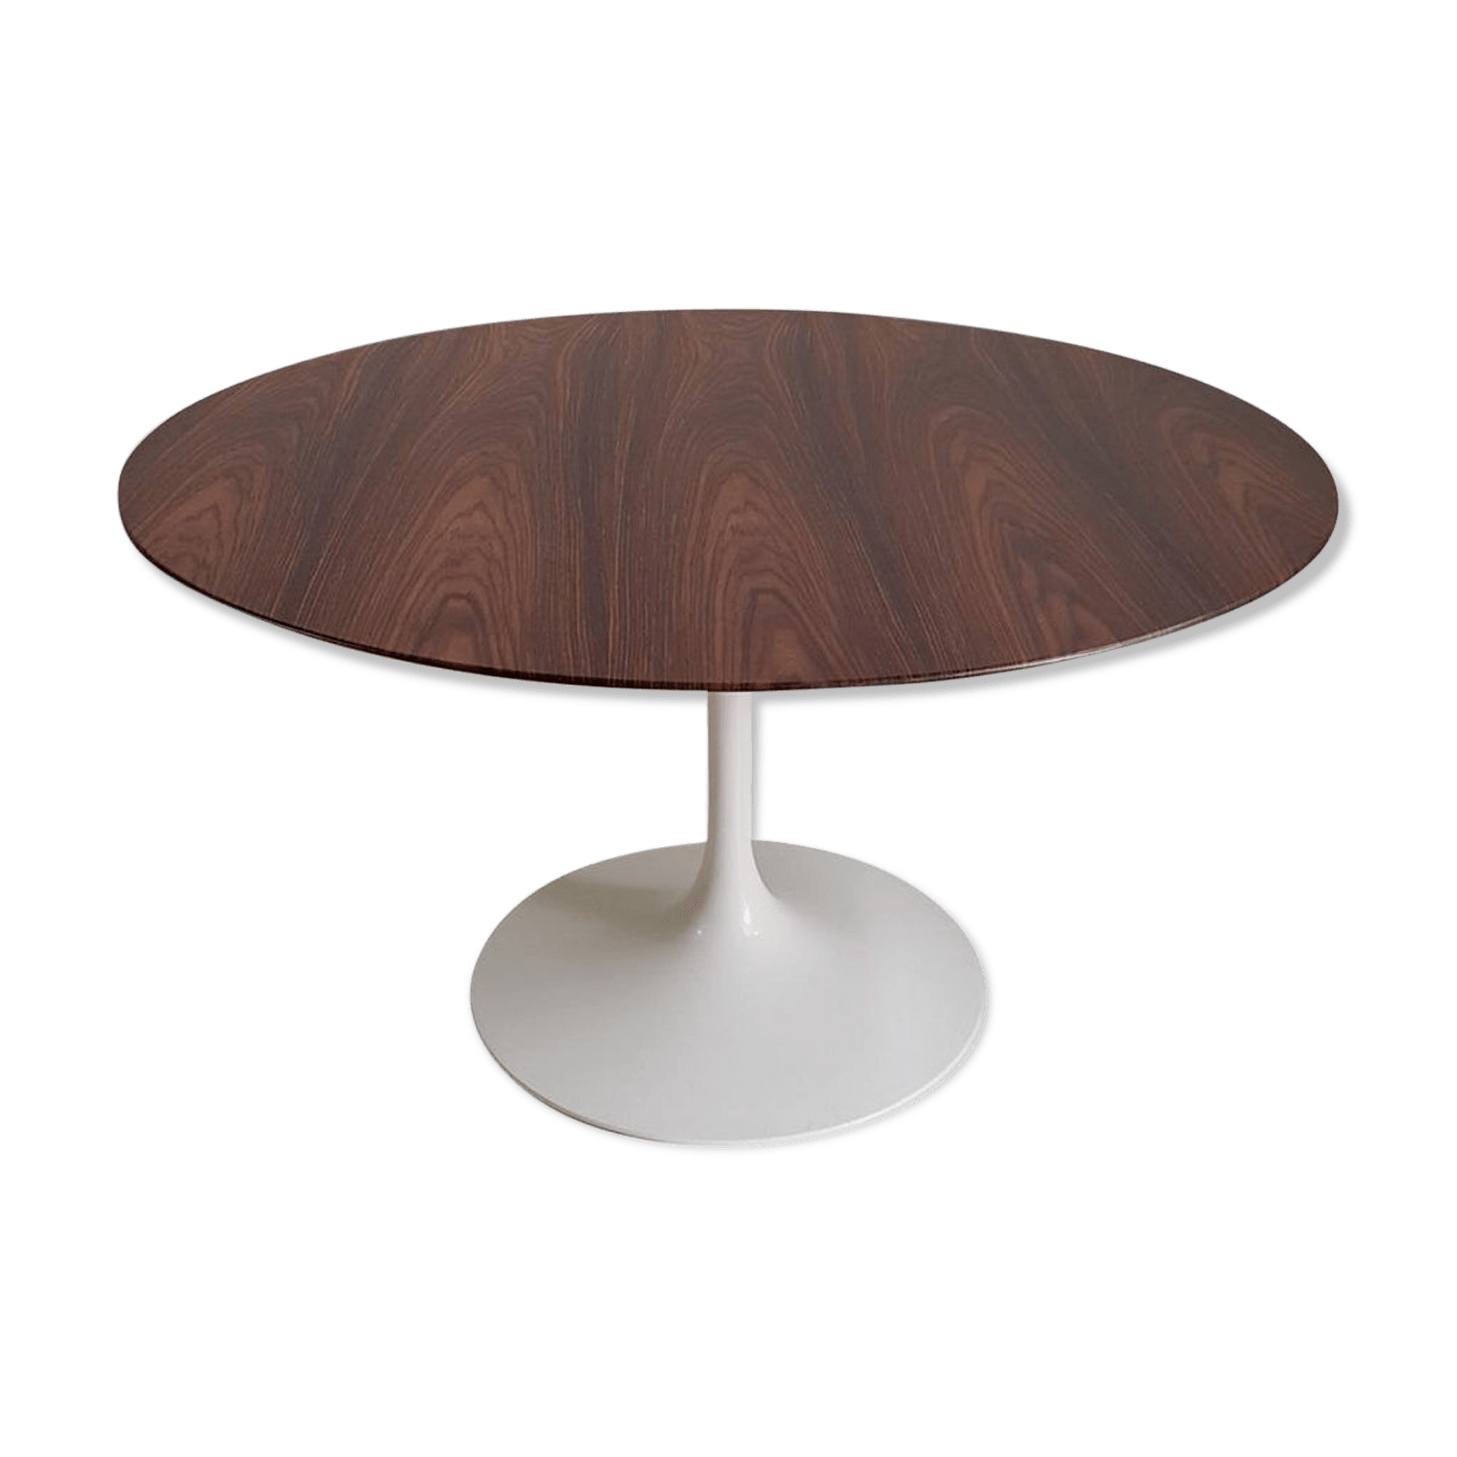 Table Ovale Knoll Table Knoll Ovale Occasion Oveetech